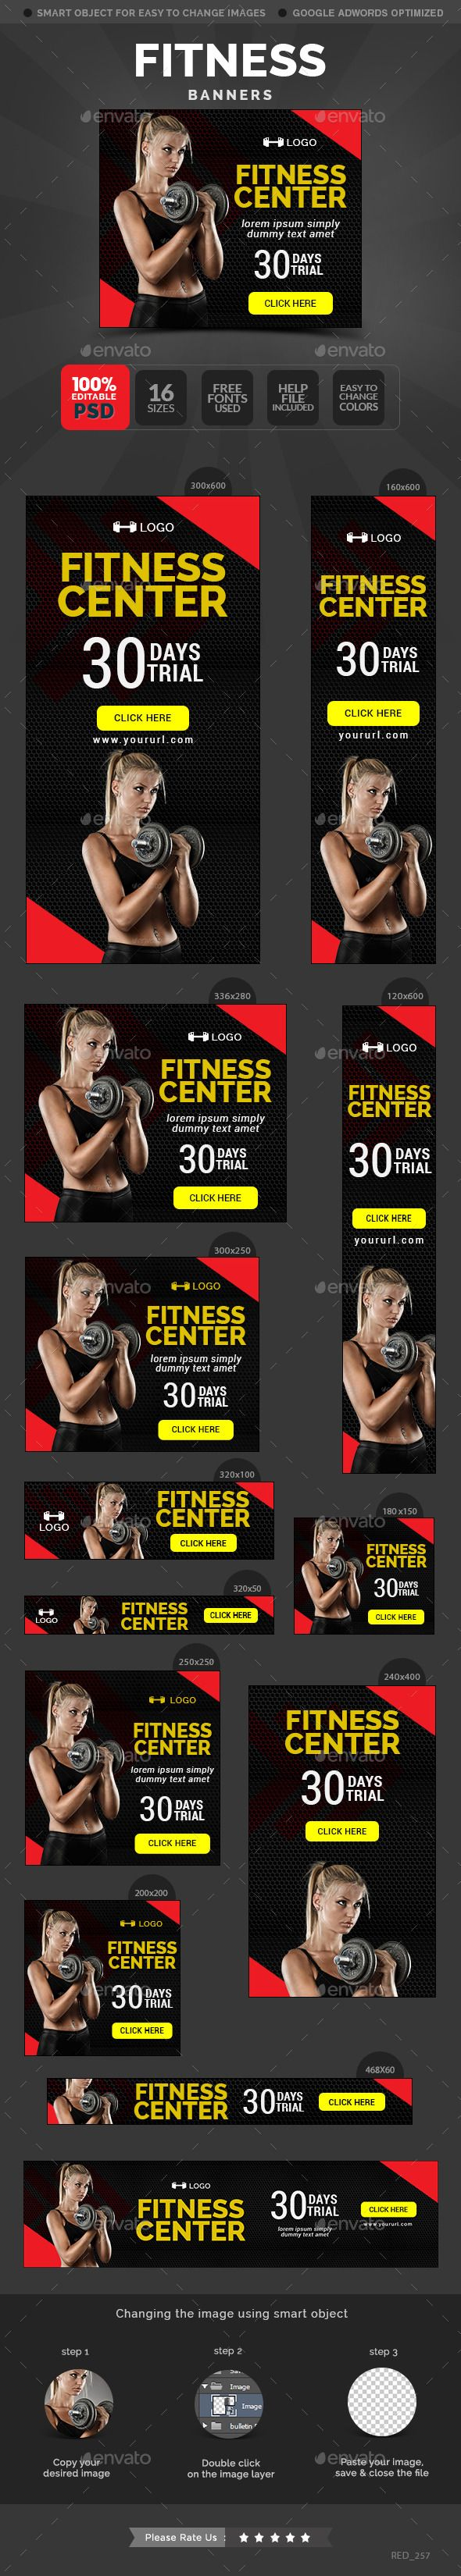 Fitness Banners Updated Banner Template Banner Banner Design